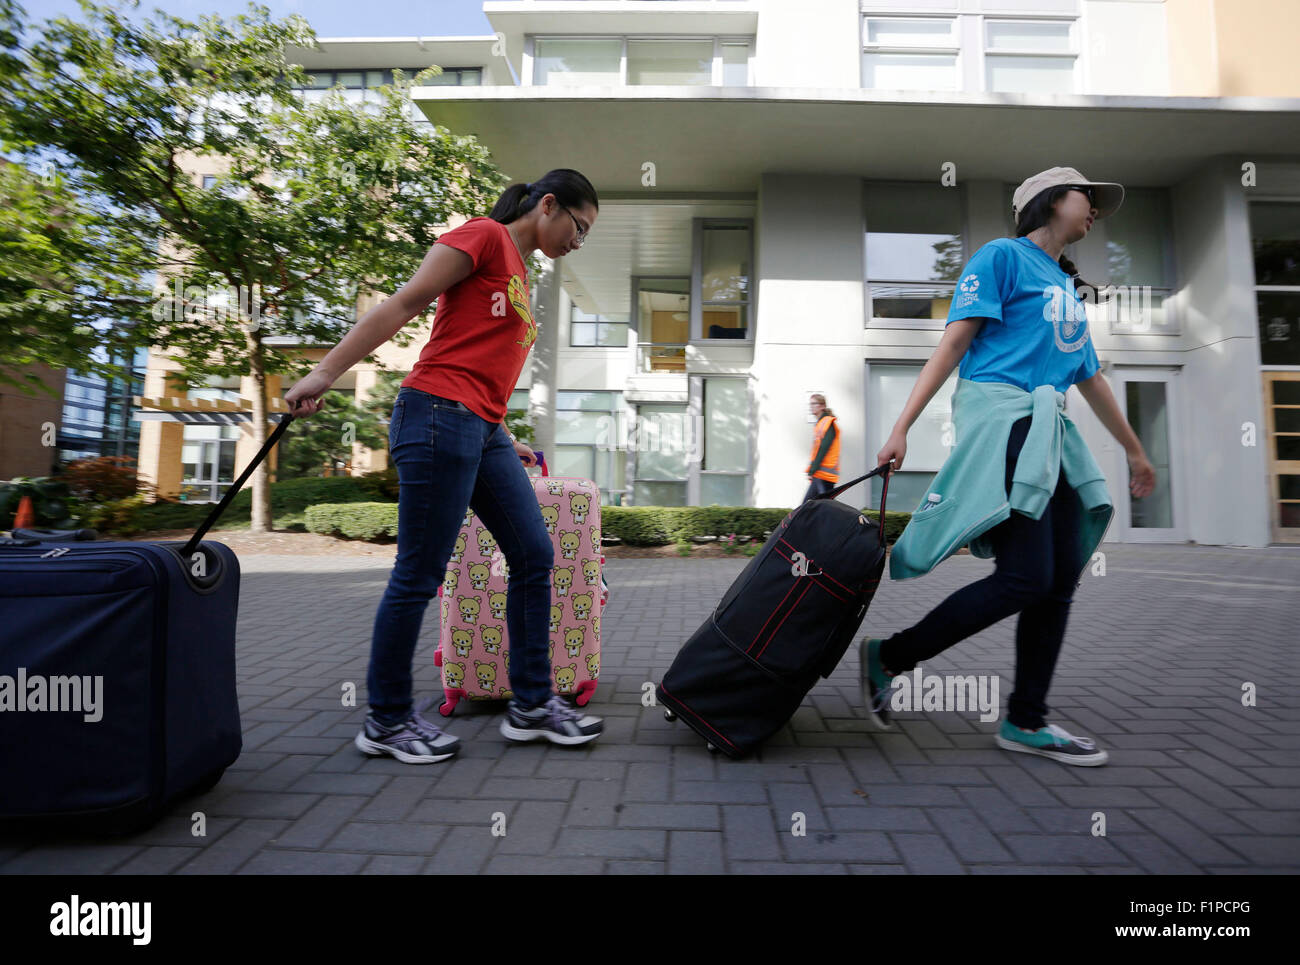 Vancouver, Canada. 5th Sep, 2015. University students transport luggages into campus residence at UBC in Vancouver, - Stock Image